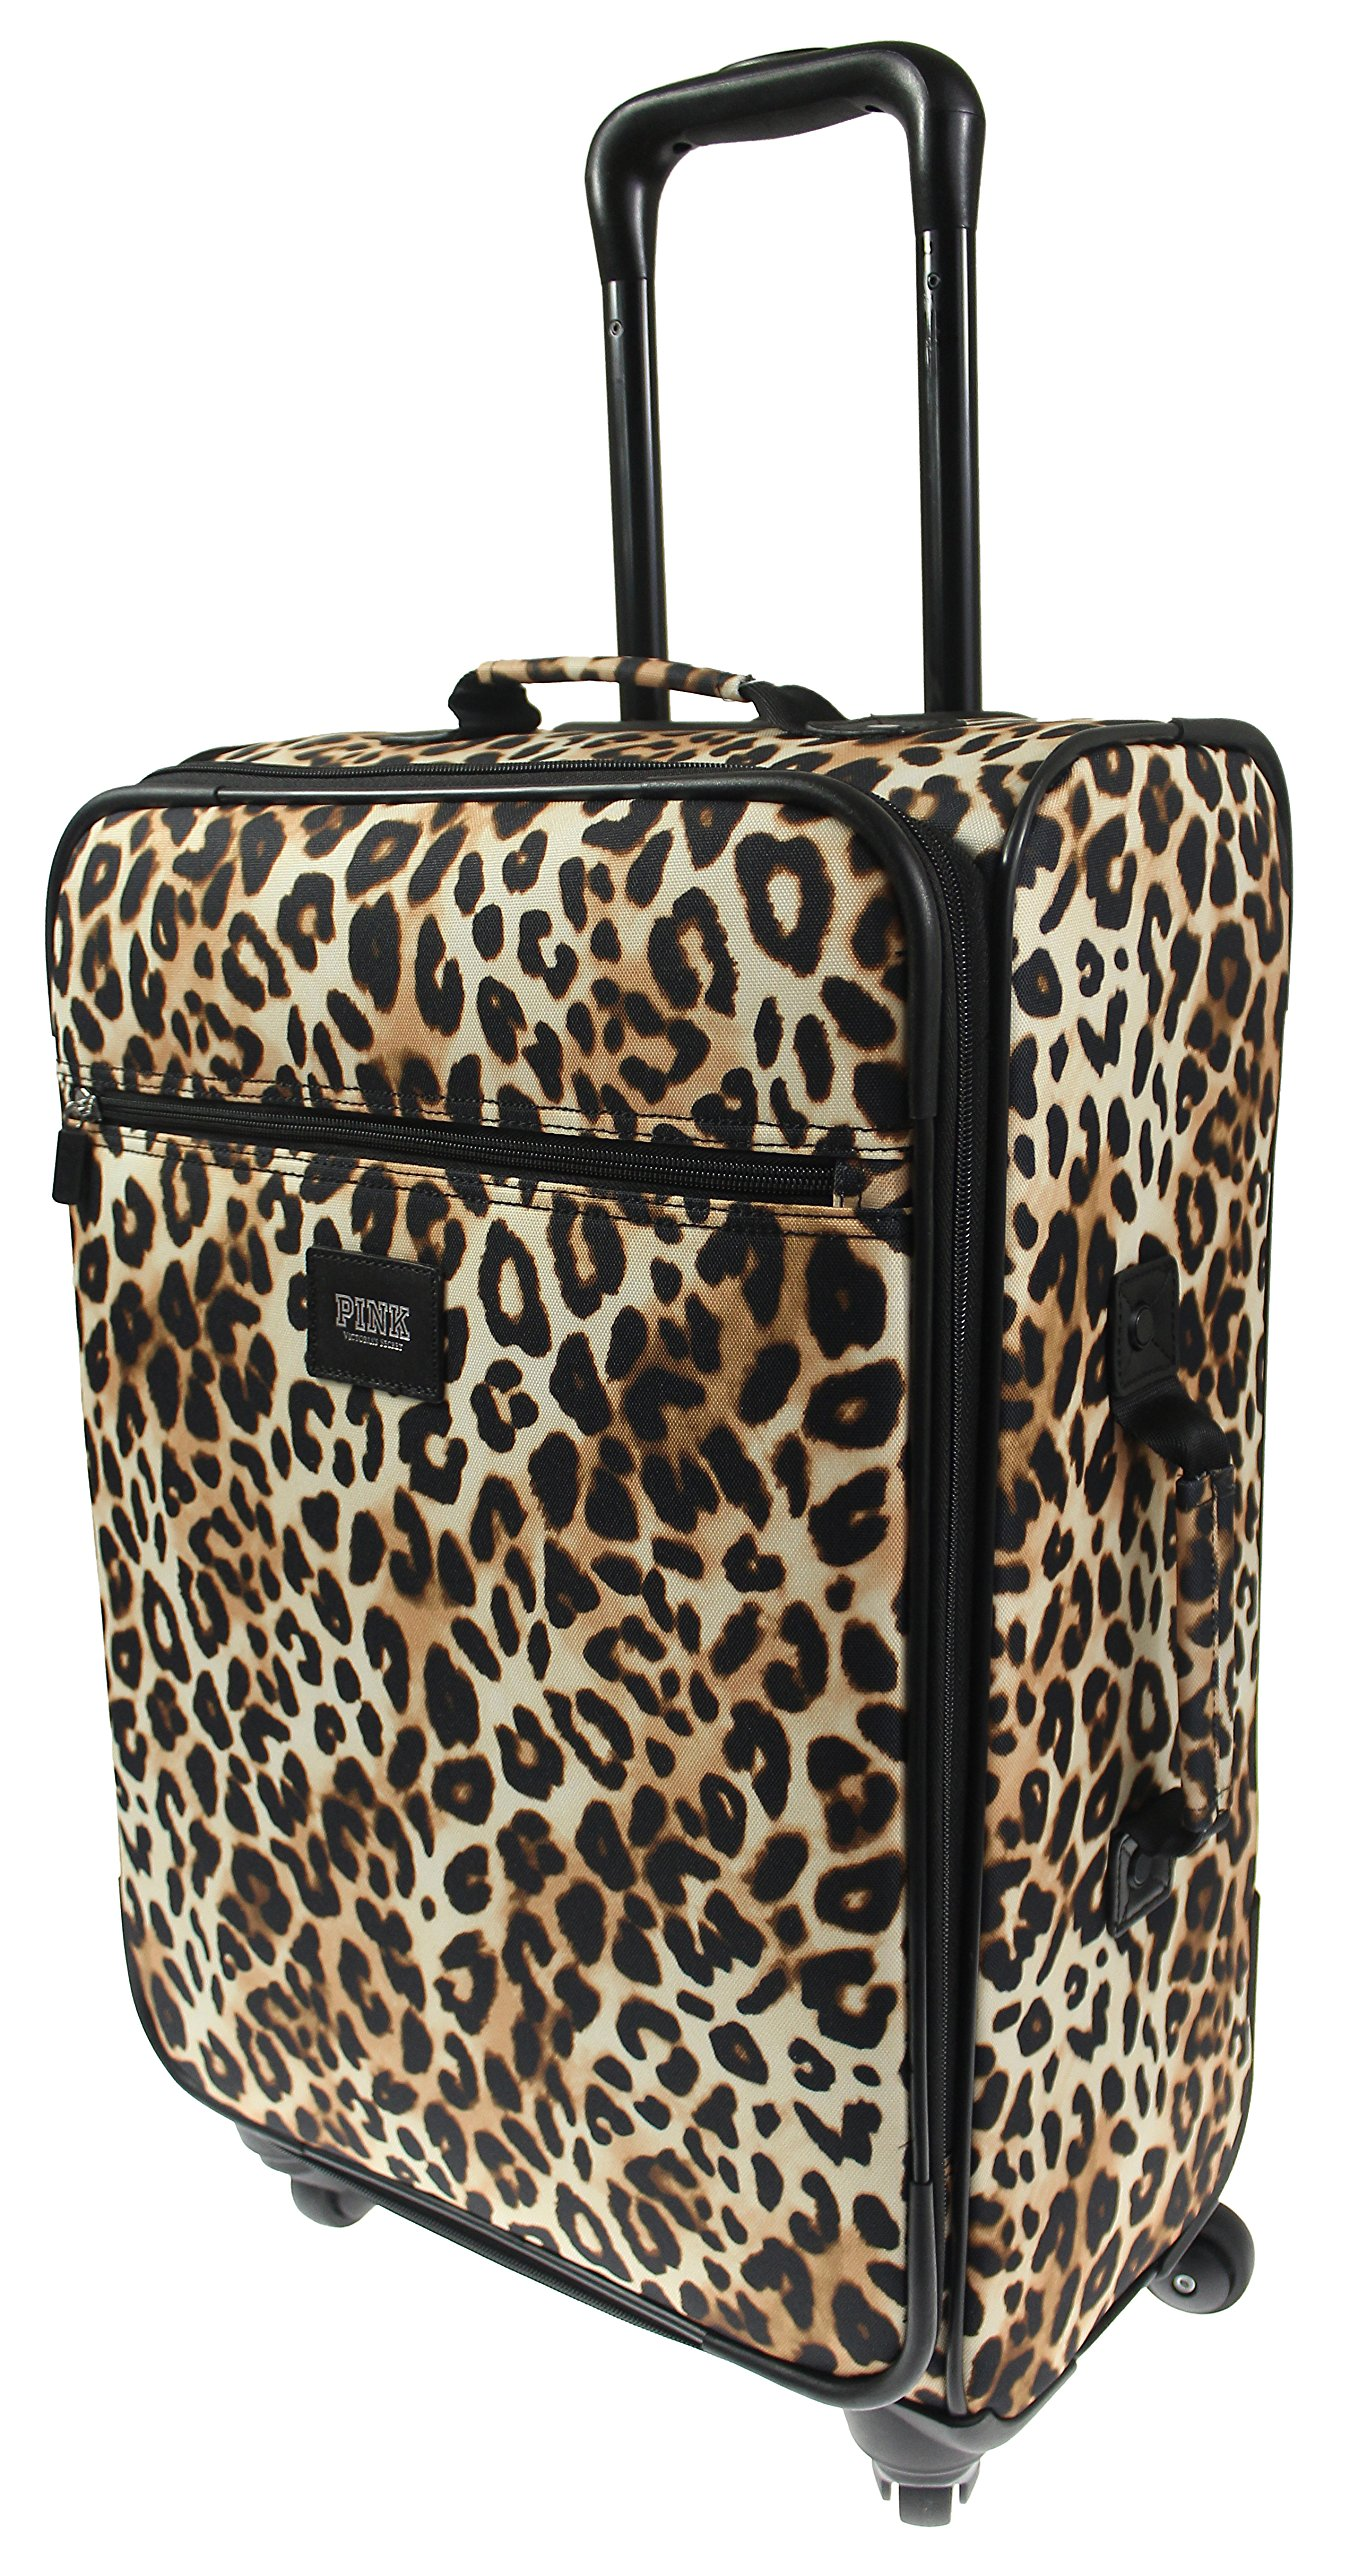 Victoria's Secret PINK Travel Carry-On VACAY READY Wheelie Suitcase - Leopard by Victoria's Secret (Image #1)